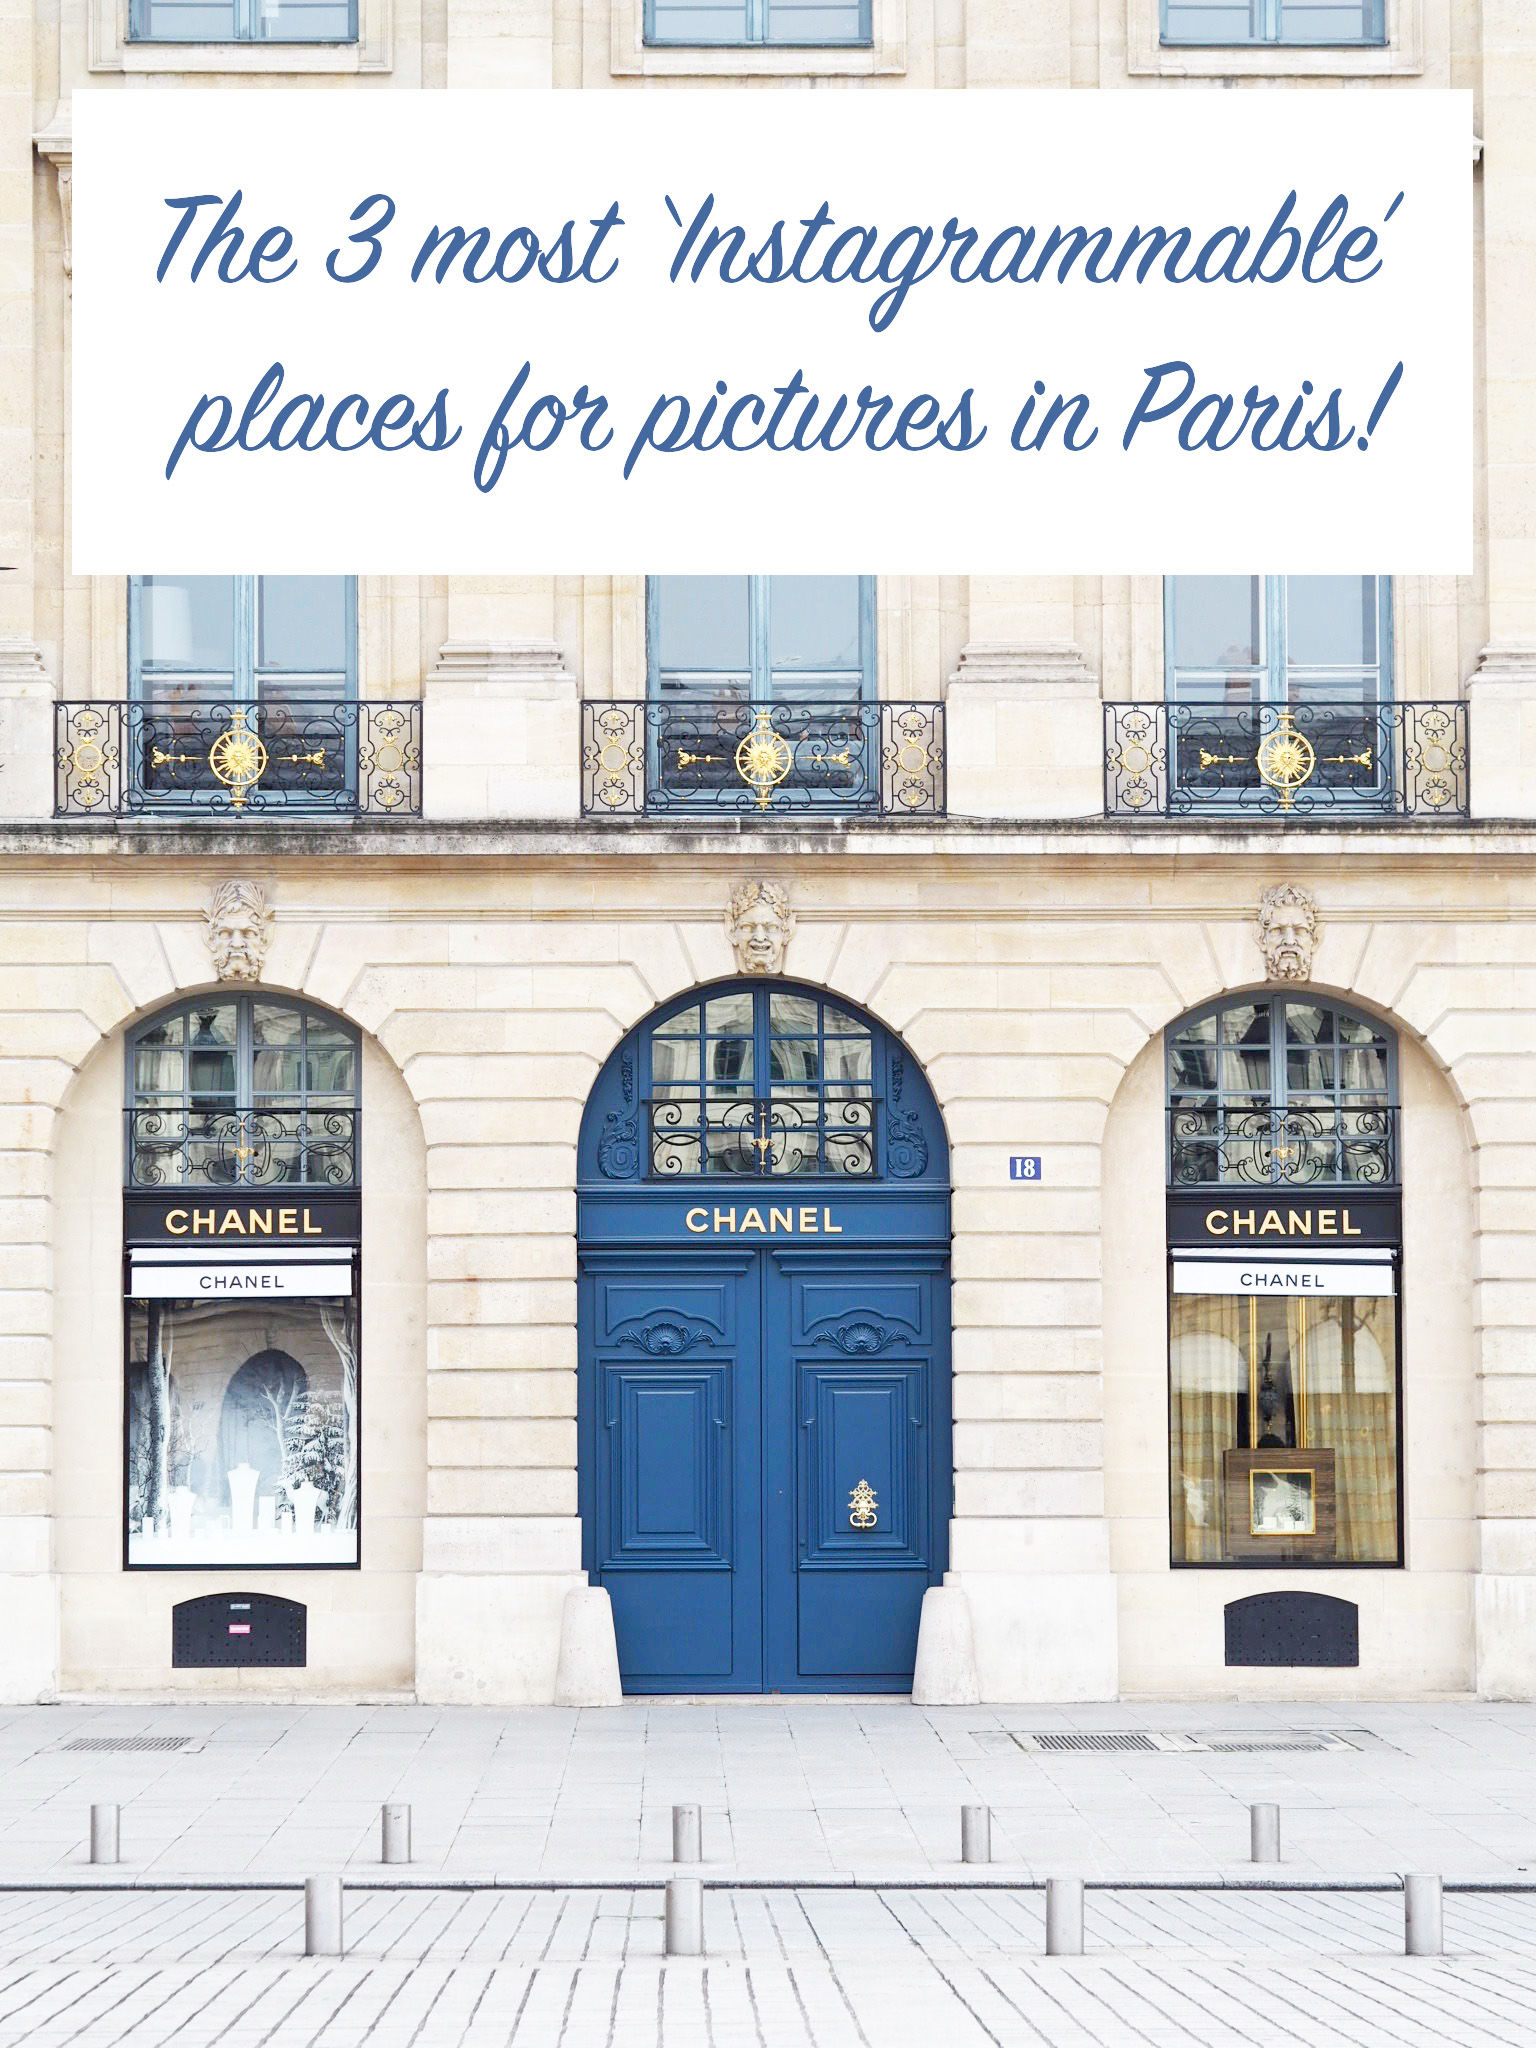 Paris Instagrammable Places